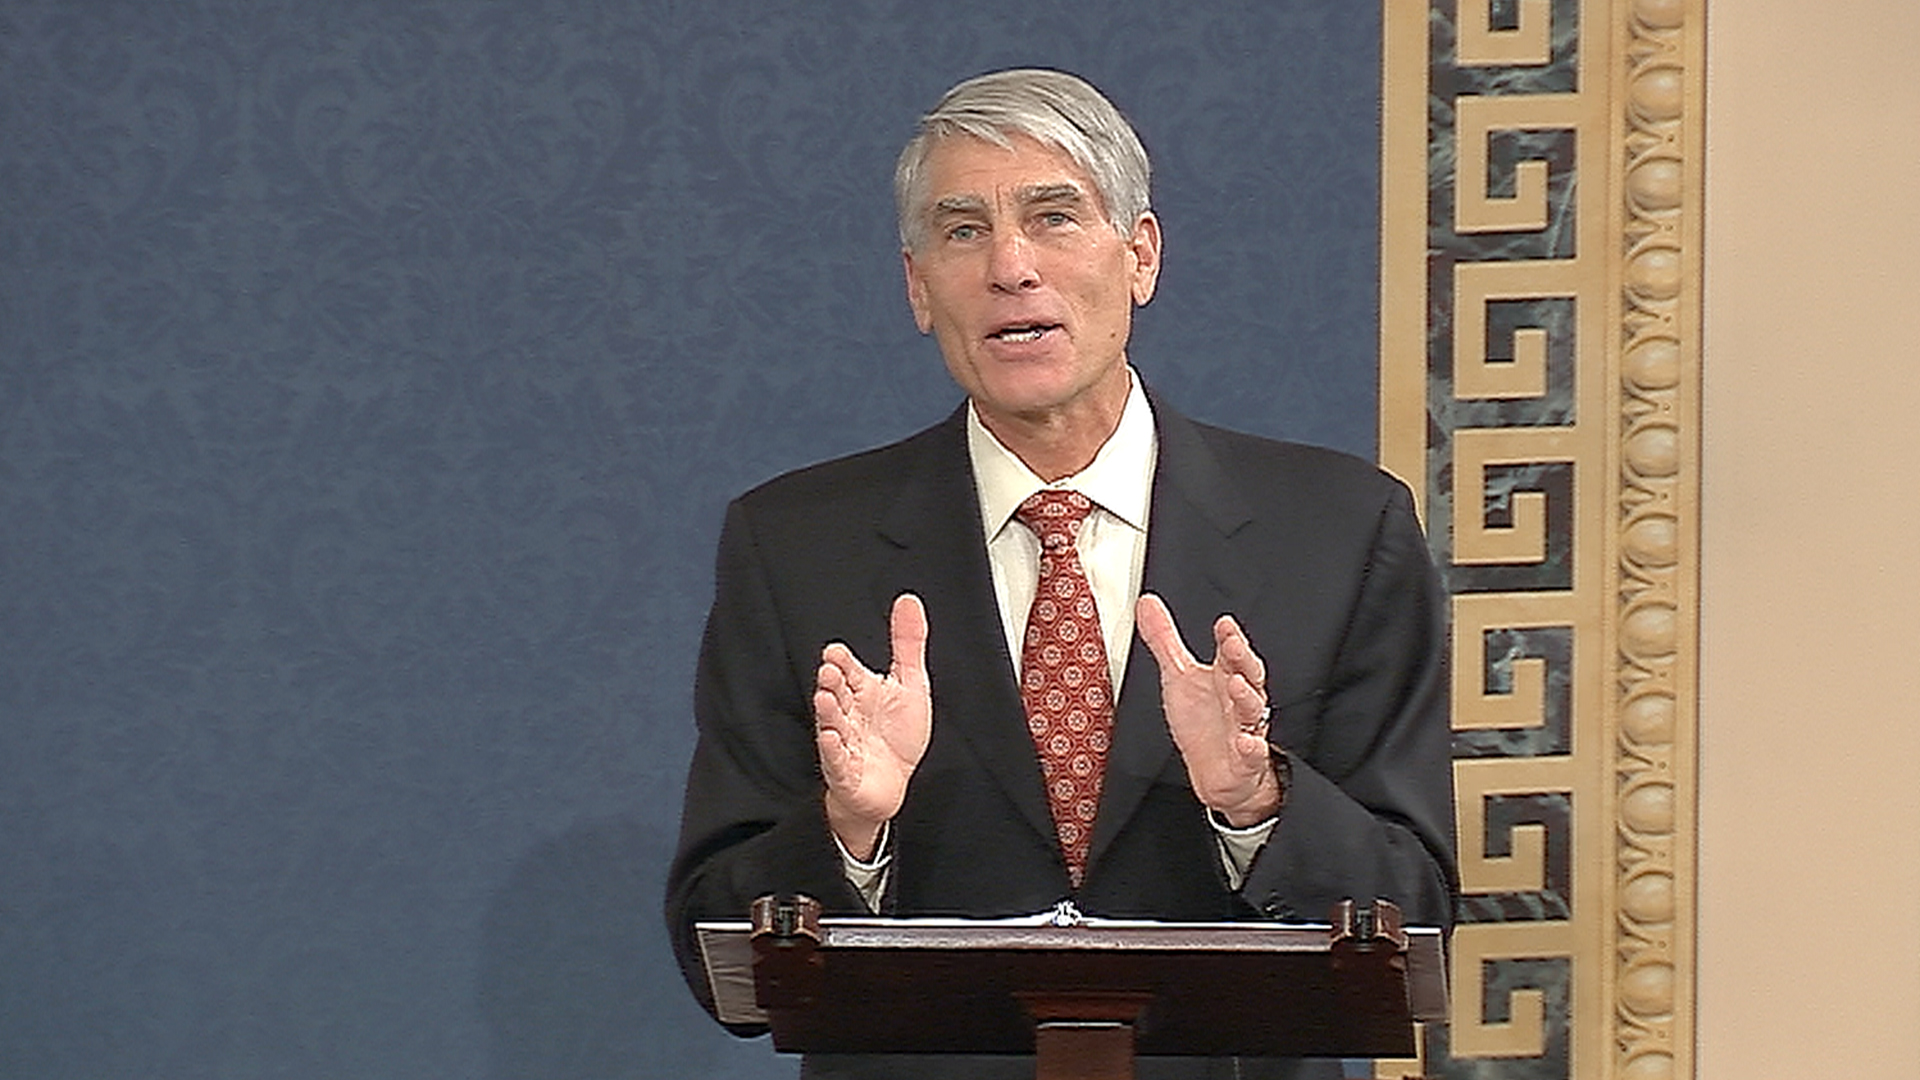 udall single women White evangelicals, 57% of republican men and 51% of republican women)  while udall won unmarried women by 36 points, there simply.